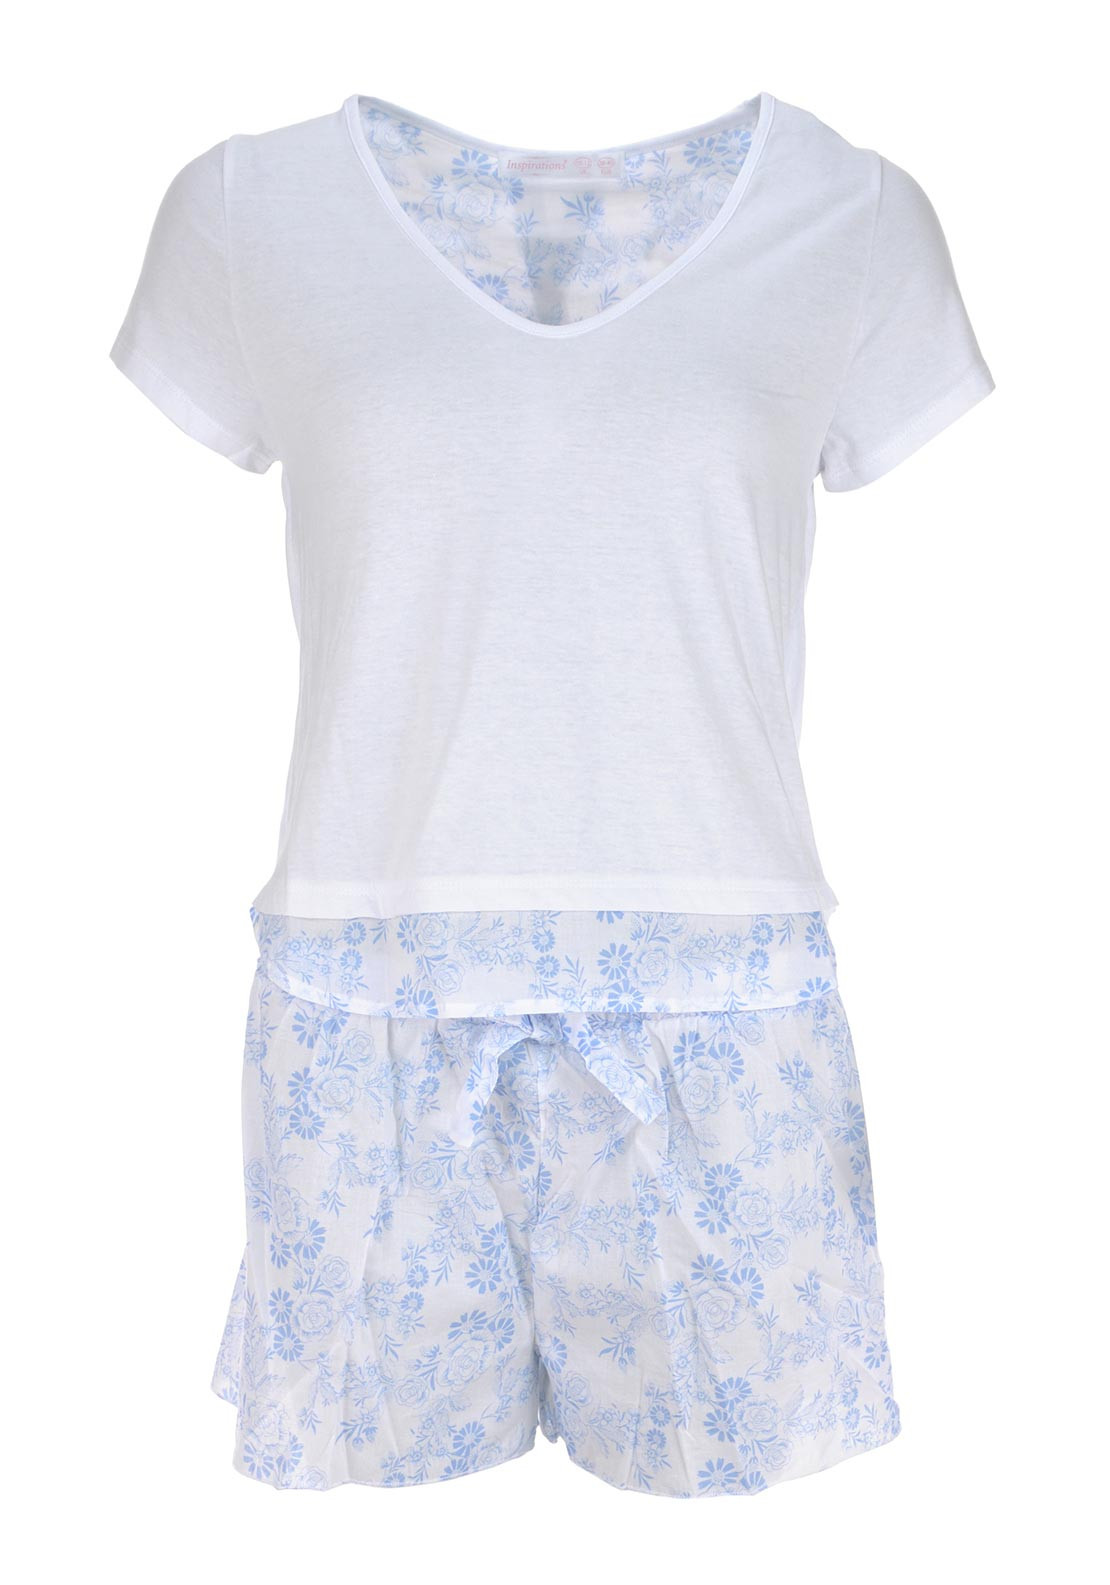 Inspirations Short Sleeve Pyjama Top and Shorts Set, White and Blue